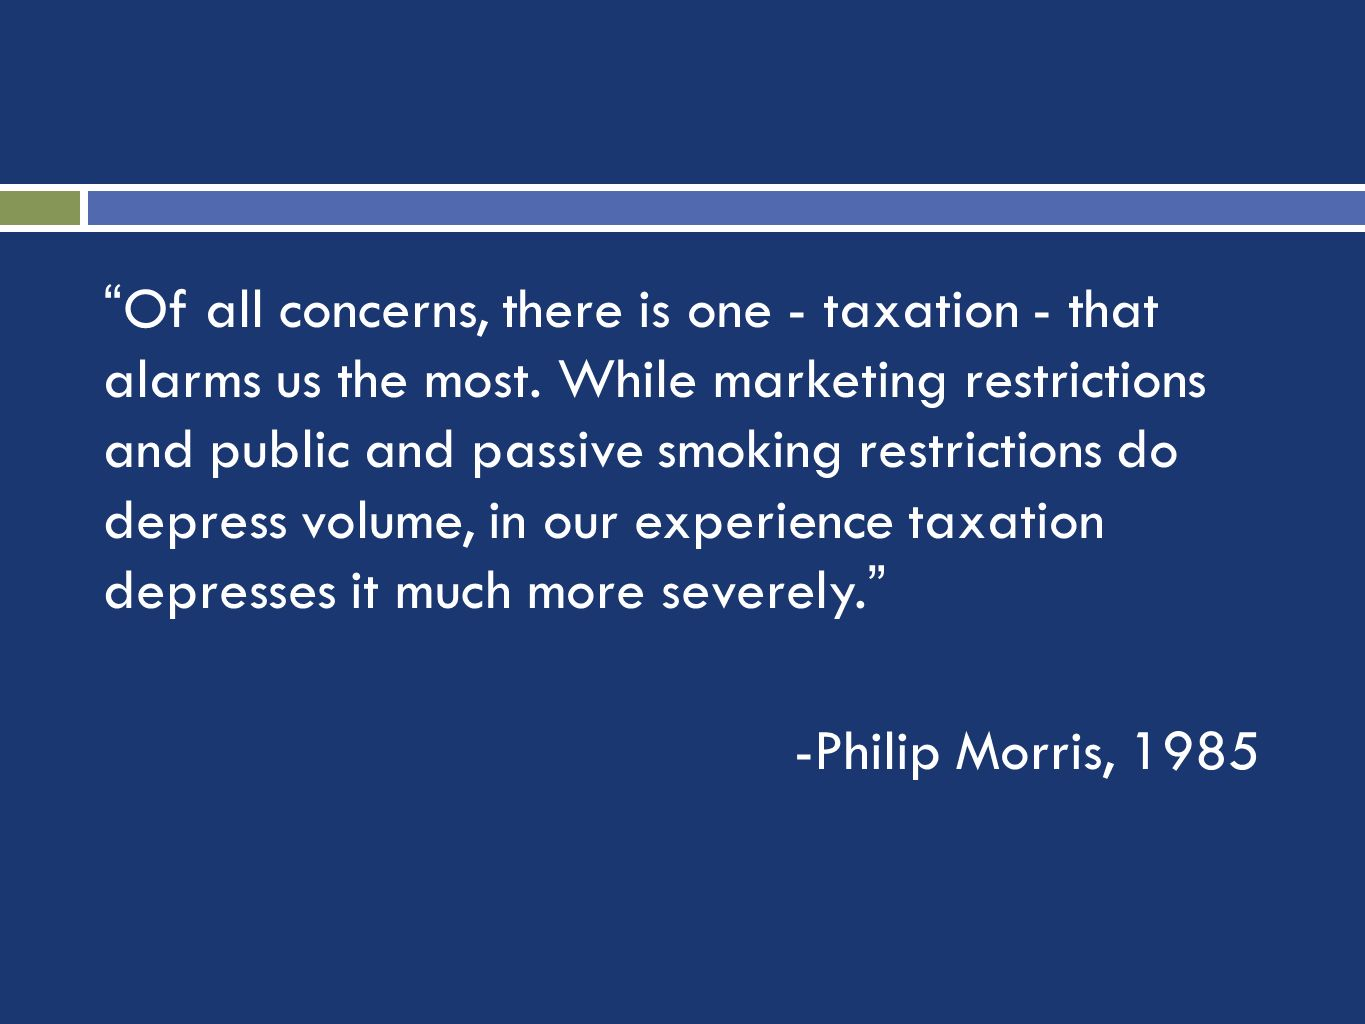 Of all concerns, there is one - taxation - that alarms us the most.